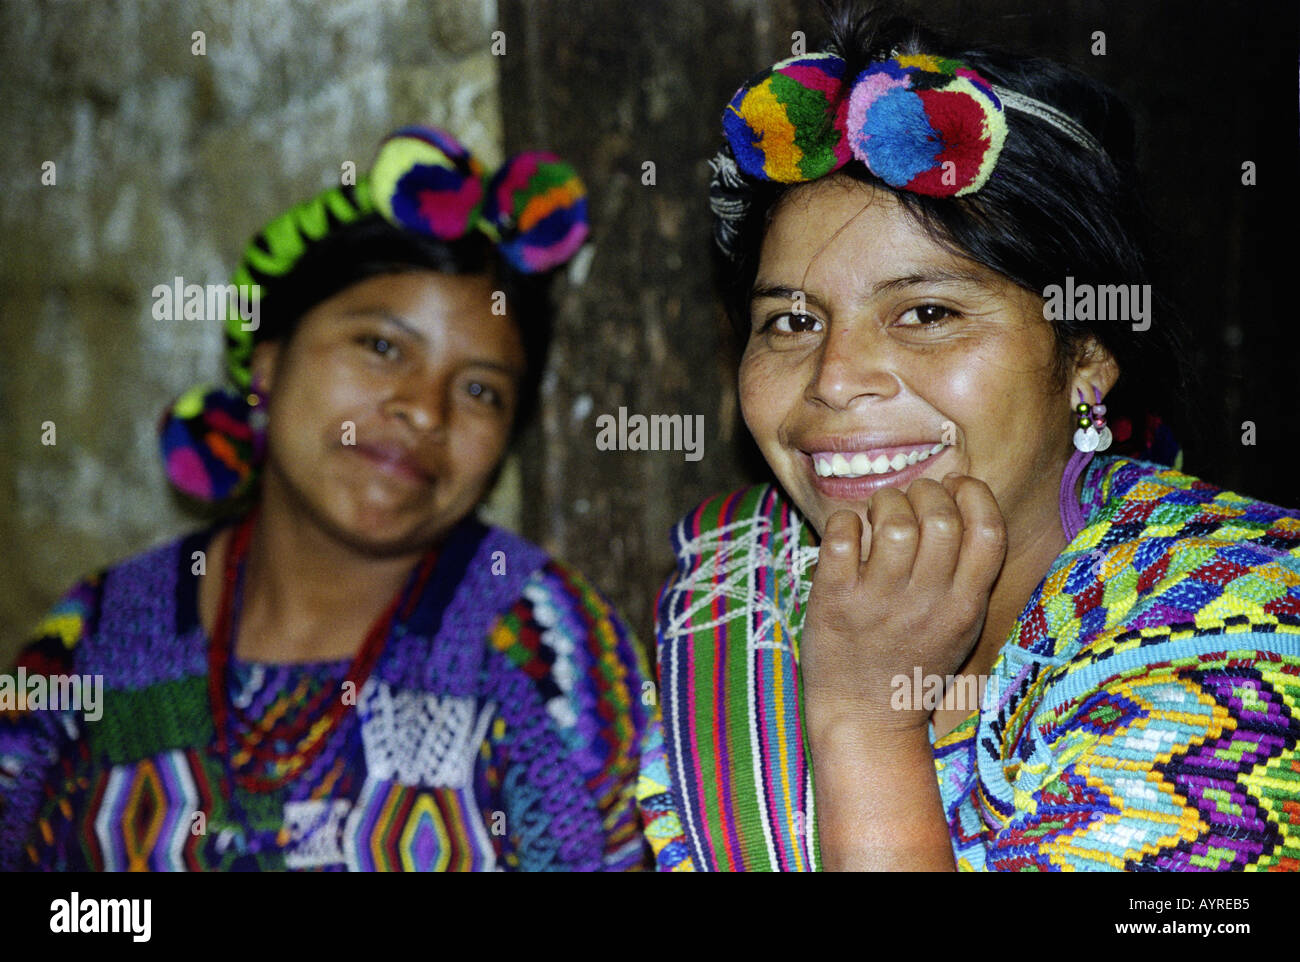 July 1997 Maya Ixil women in village of Chajul at the north of the Ixil triangle El Quiche Guatemala James Sturcke - Stock Image